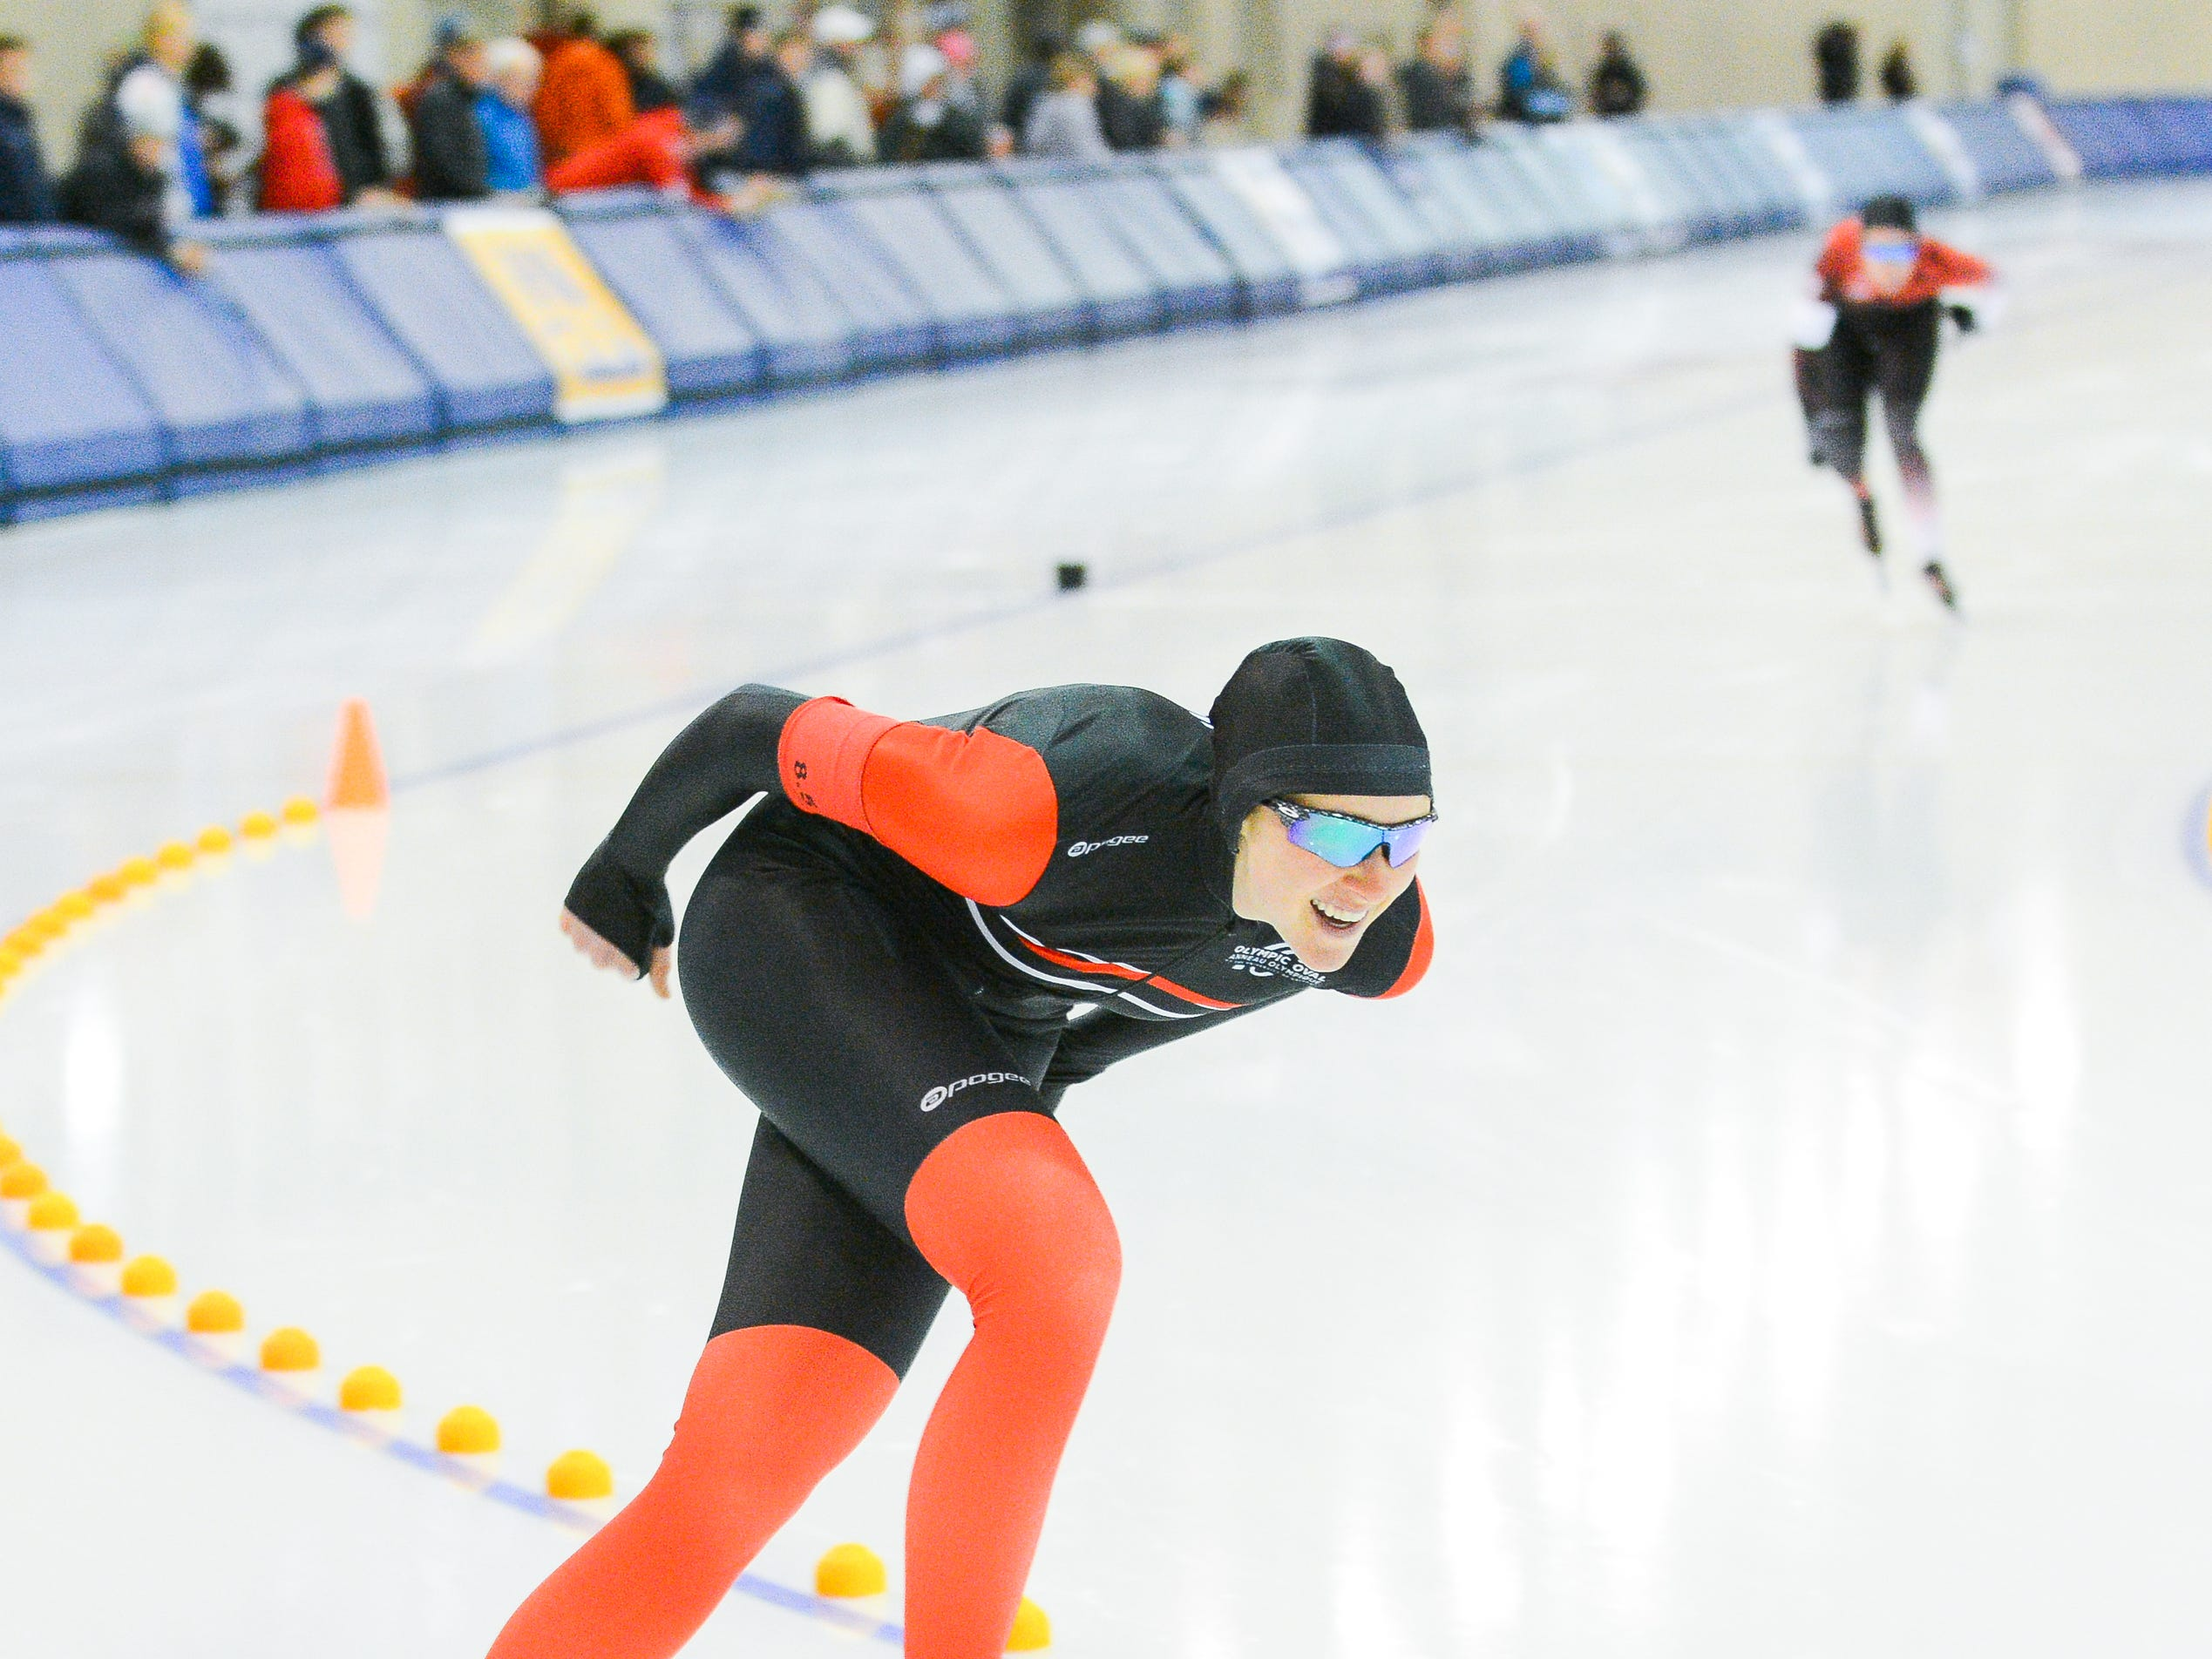 Taylor White leads Olivia Scott in the women's 1,500 meters at the U.S. World Cup qualifying event Sunday, November 4, 2018, at the Pettit National Ice Center. 1,500 meters at the U.S. World Cup qualifying event Sunday, November 4, 2018, at the Pettit National Ice Center. White finished ninth